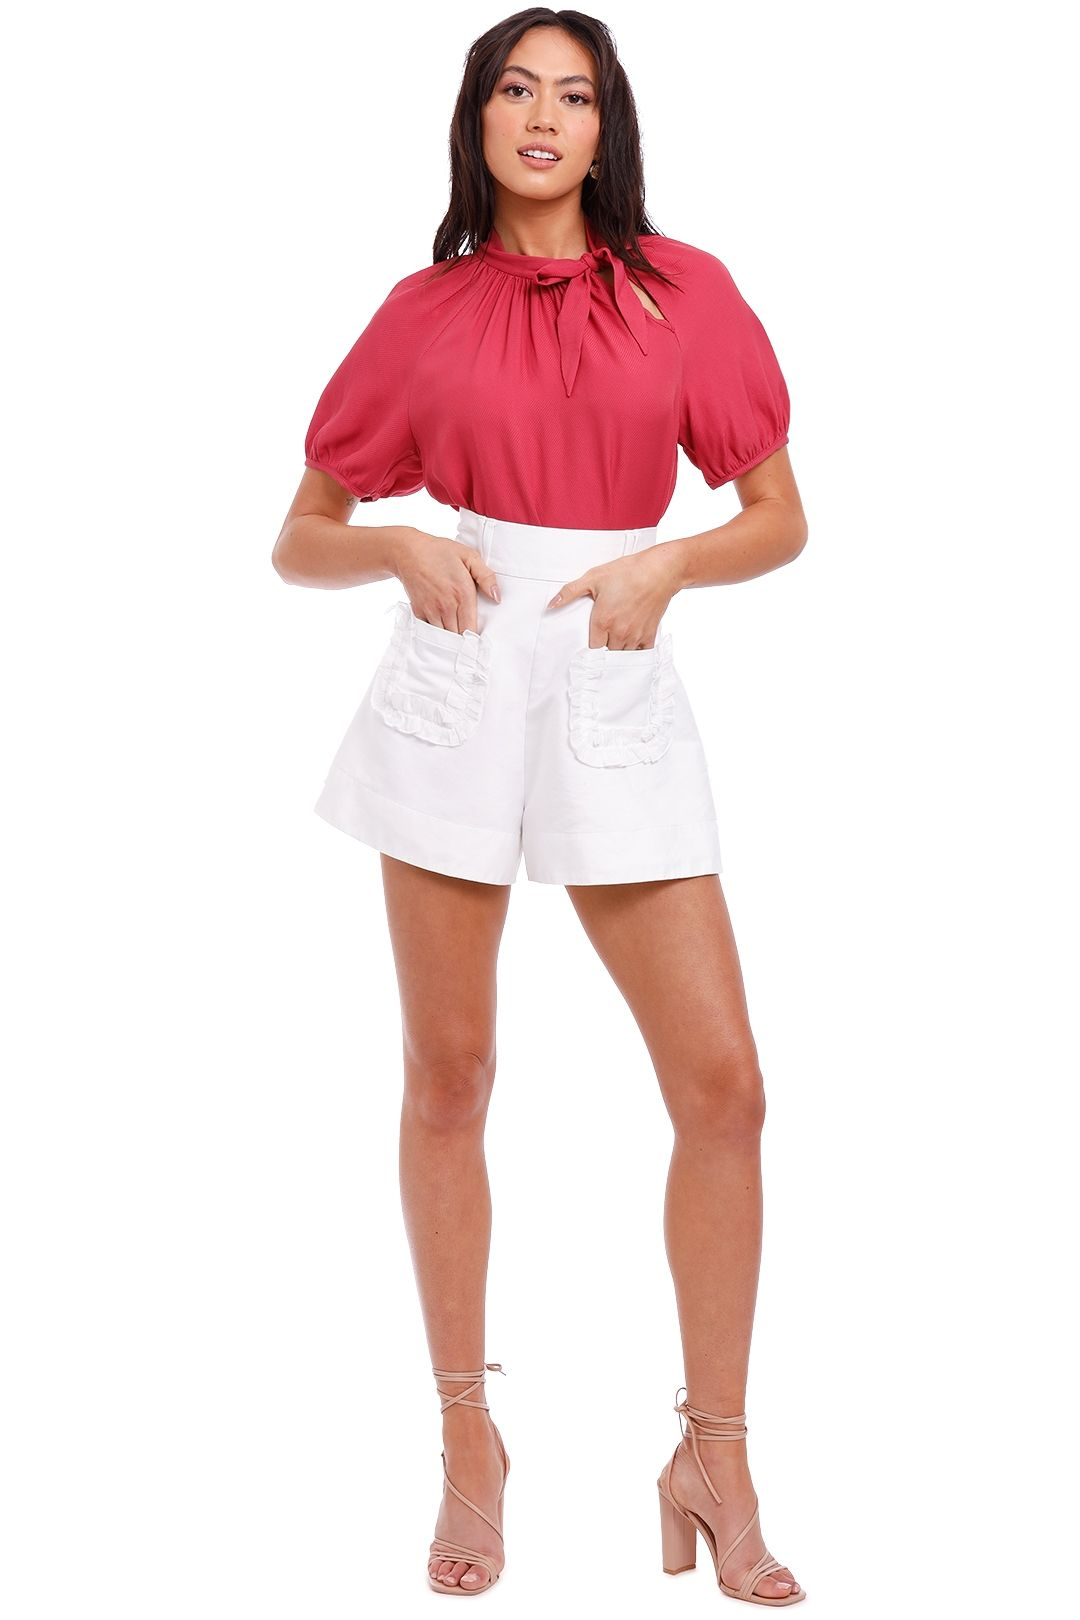 Kate Sylvester Olive Top pink fuschia